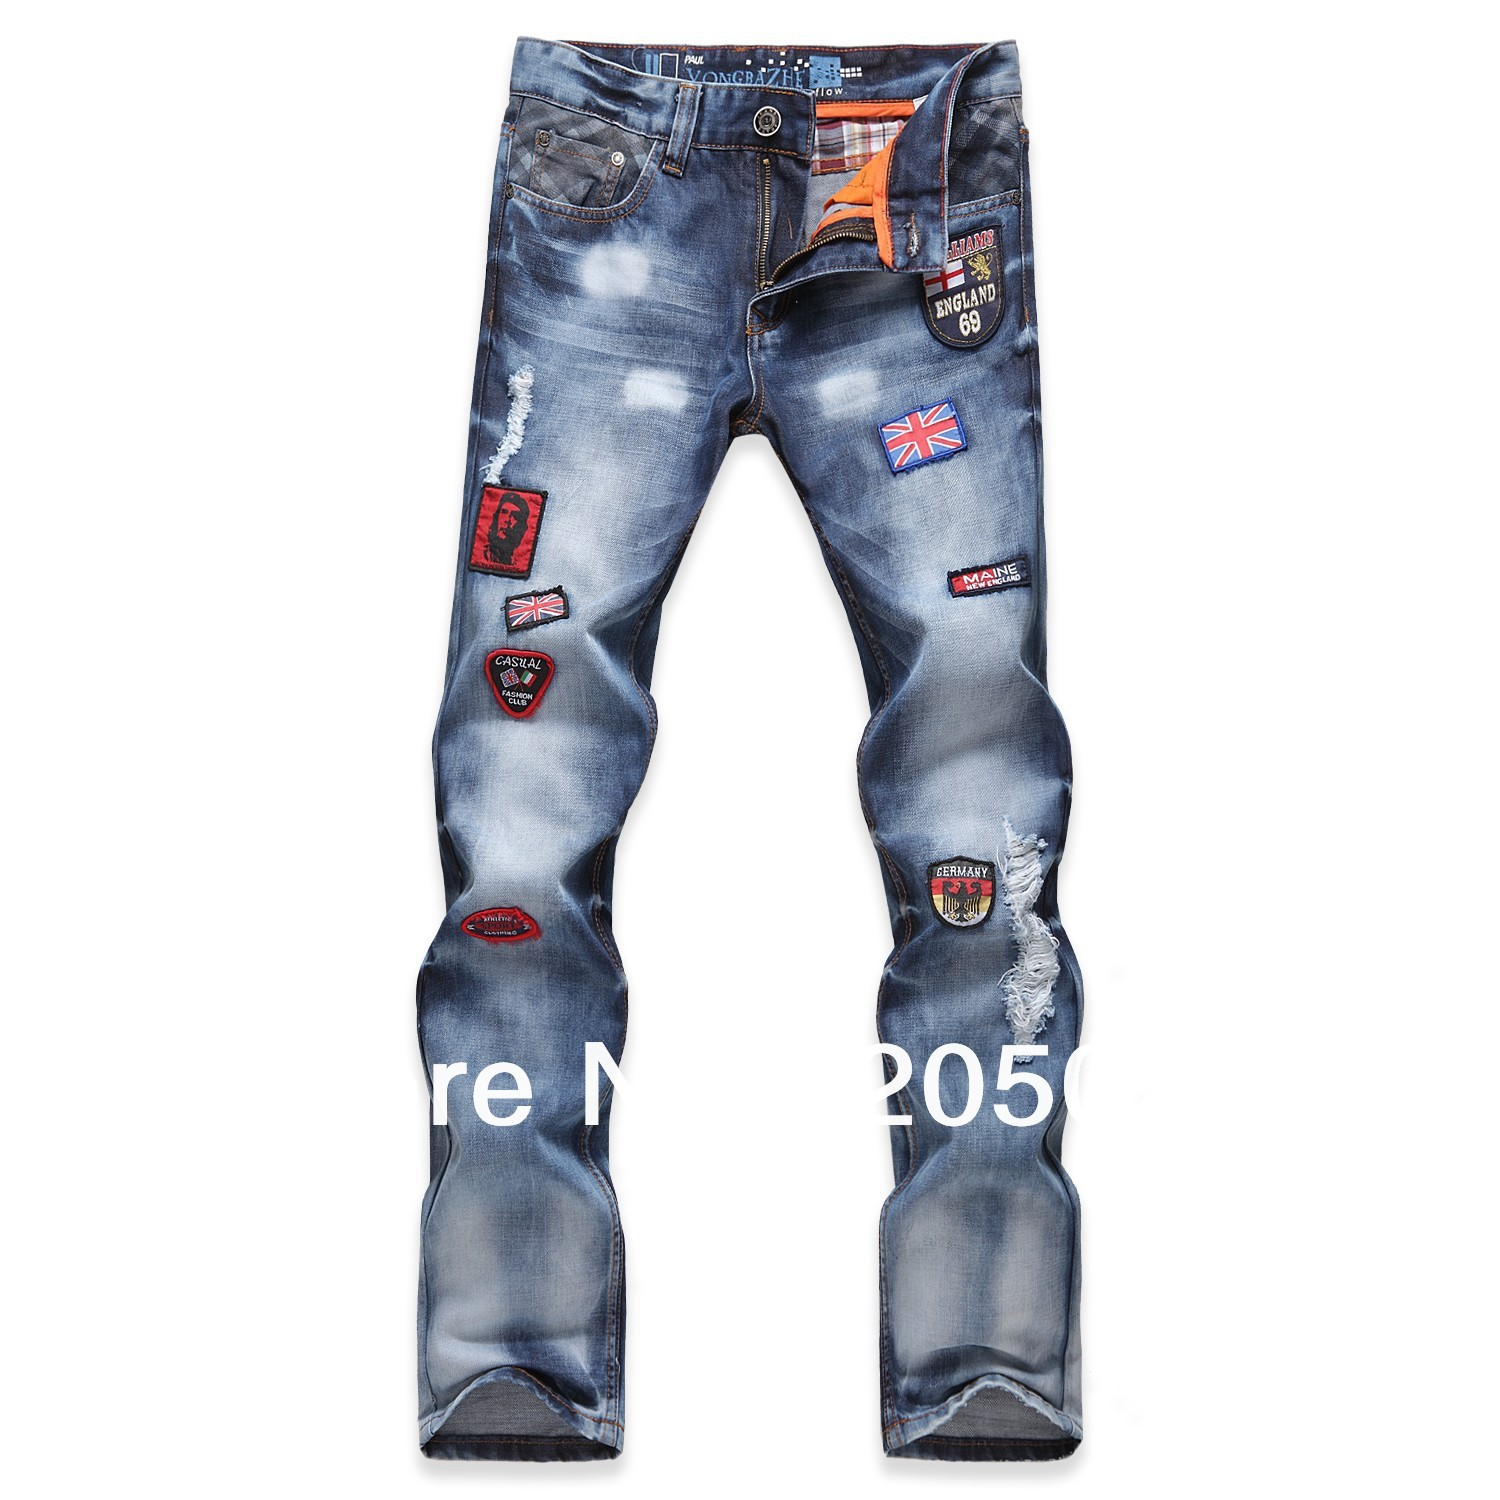 ФОТО 2013 plus size 28 to 36HOT!!! Men's jeans trousers,Leisure&Casual pants, Newly famous brand Cotton Men Jeans pants Free Shipping